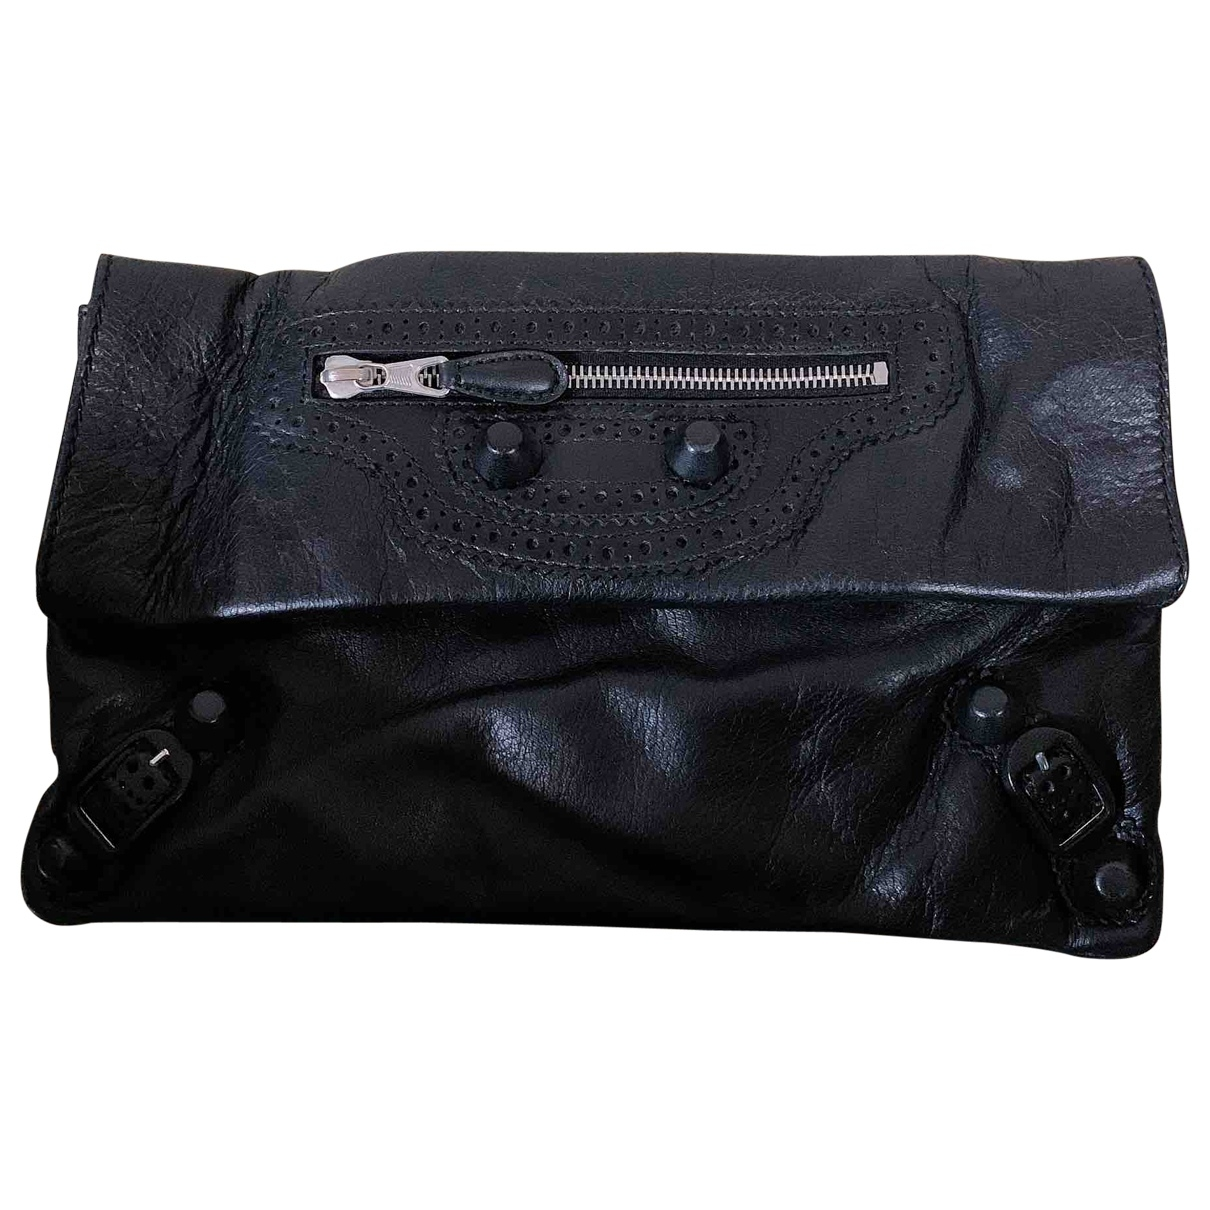 Balenciaga Envelop Black Leather Clutch bag for Women \N